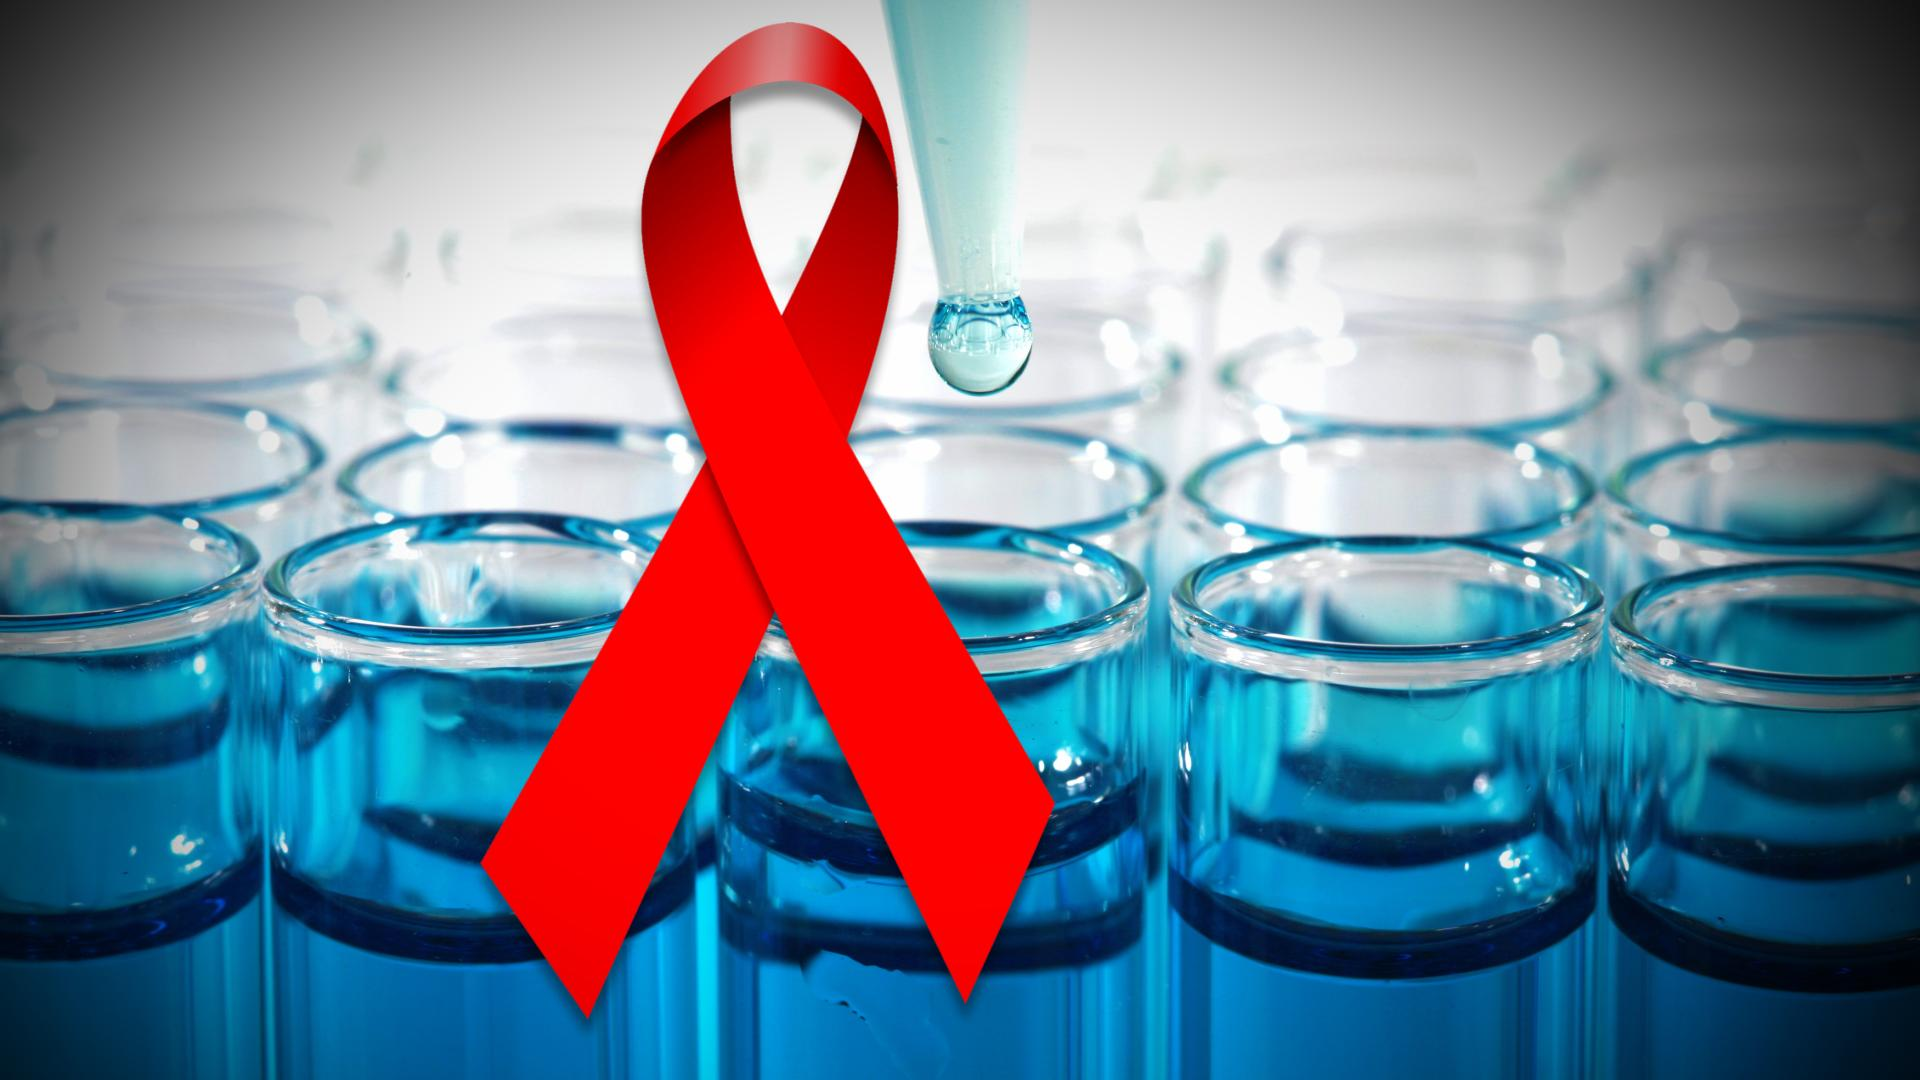 Cure for HIV AIDS North Carolina Researchers are Very Close to Finding Permanent HIV Cure